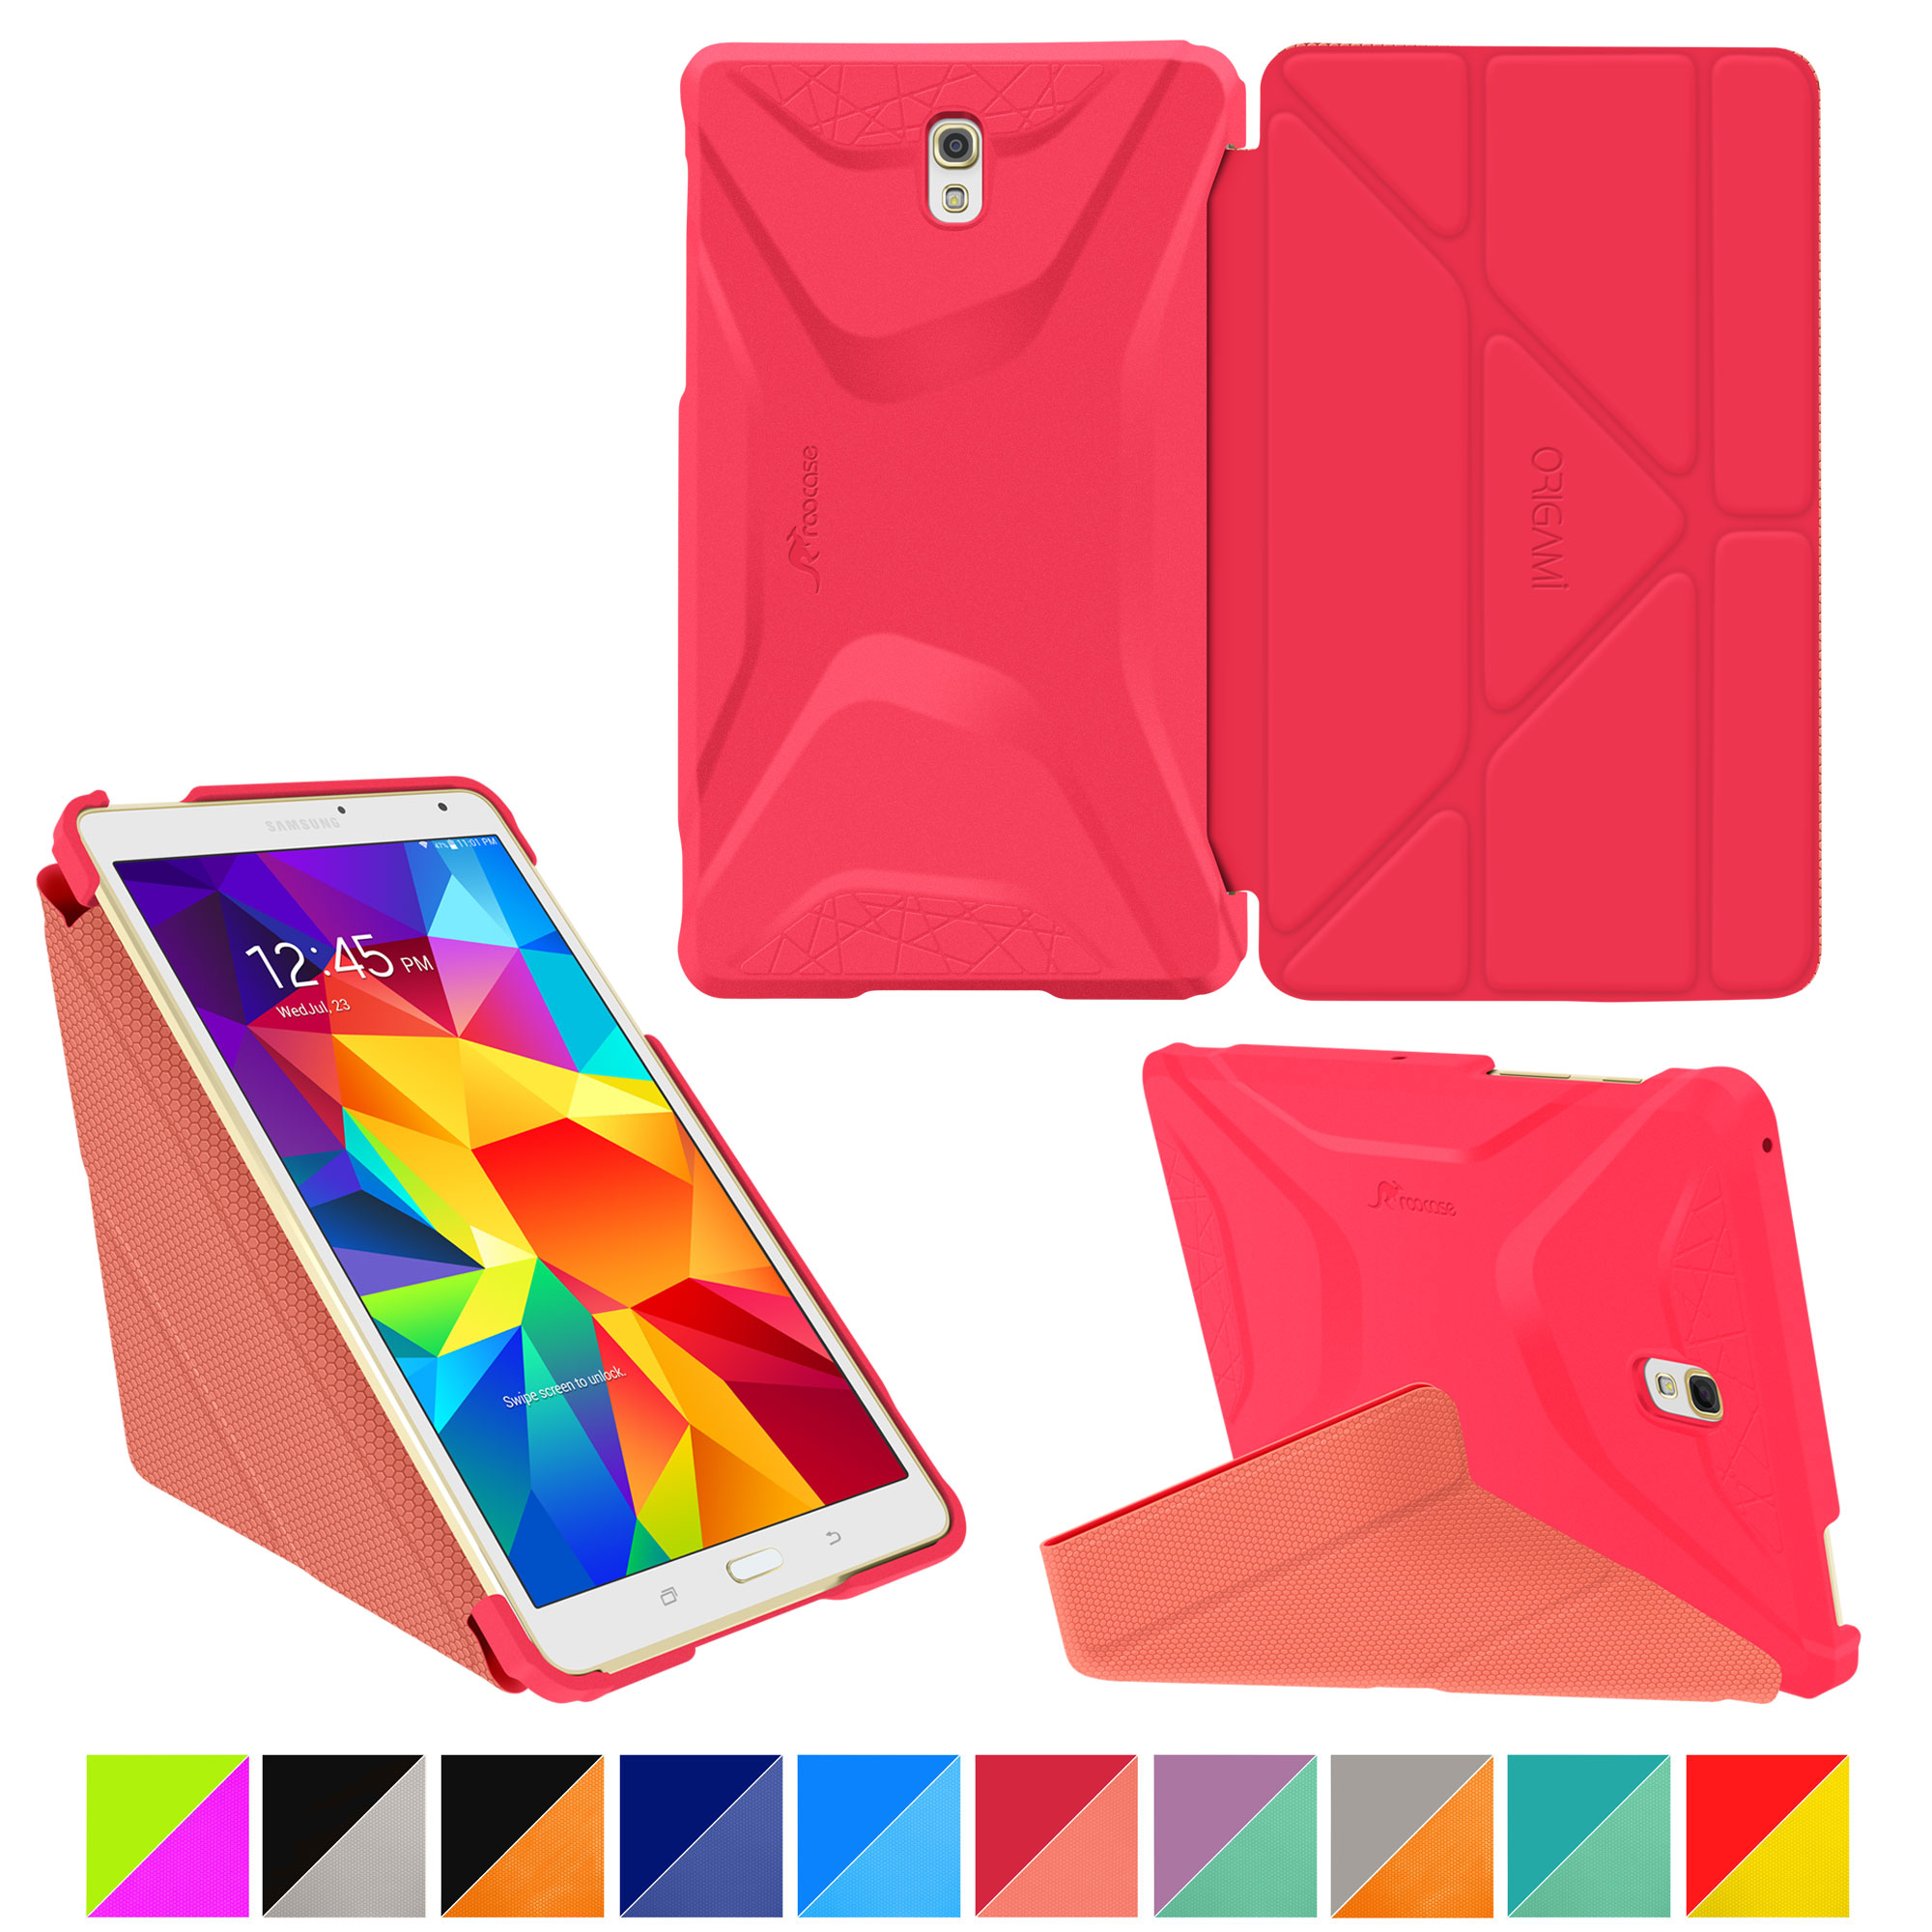 Galaxy Tab S 8.4 Case, Samsung Galaxy Tab S 8.4 case, rooCASE Origami (3 Way Stand) Slim Shell Lightweight Tablet Folio Smart Cover Pink